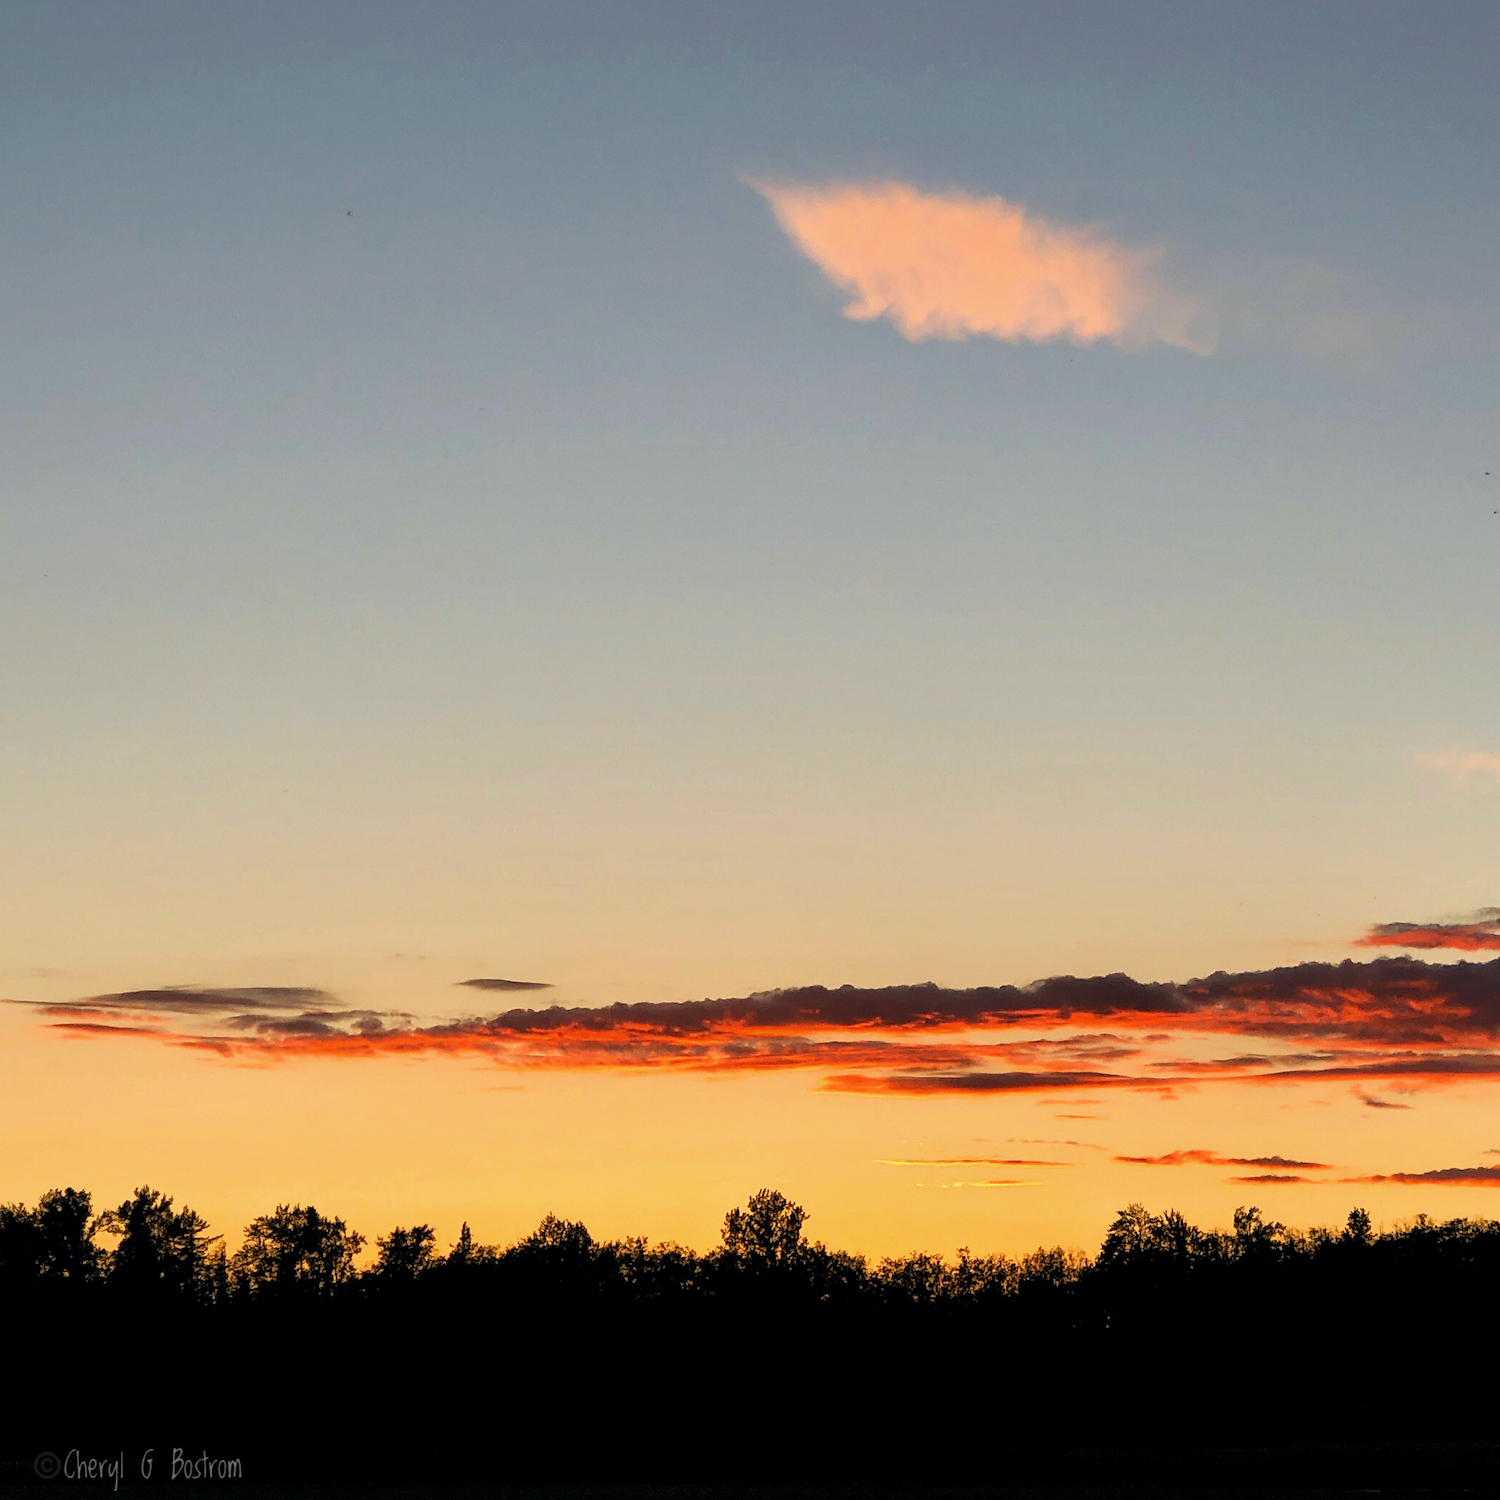 pillow-cloud-over-sunset-and-forest